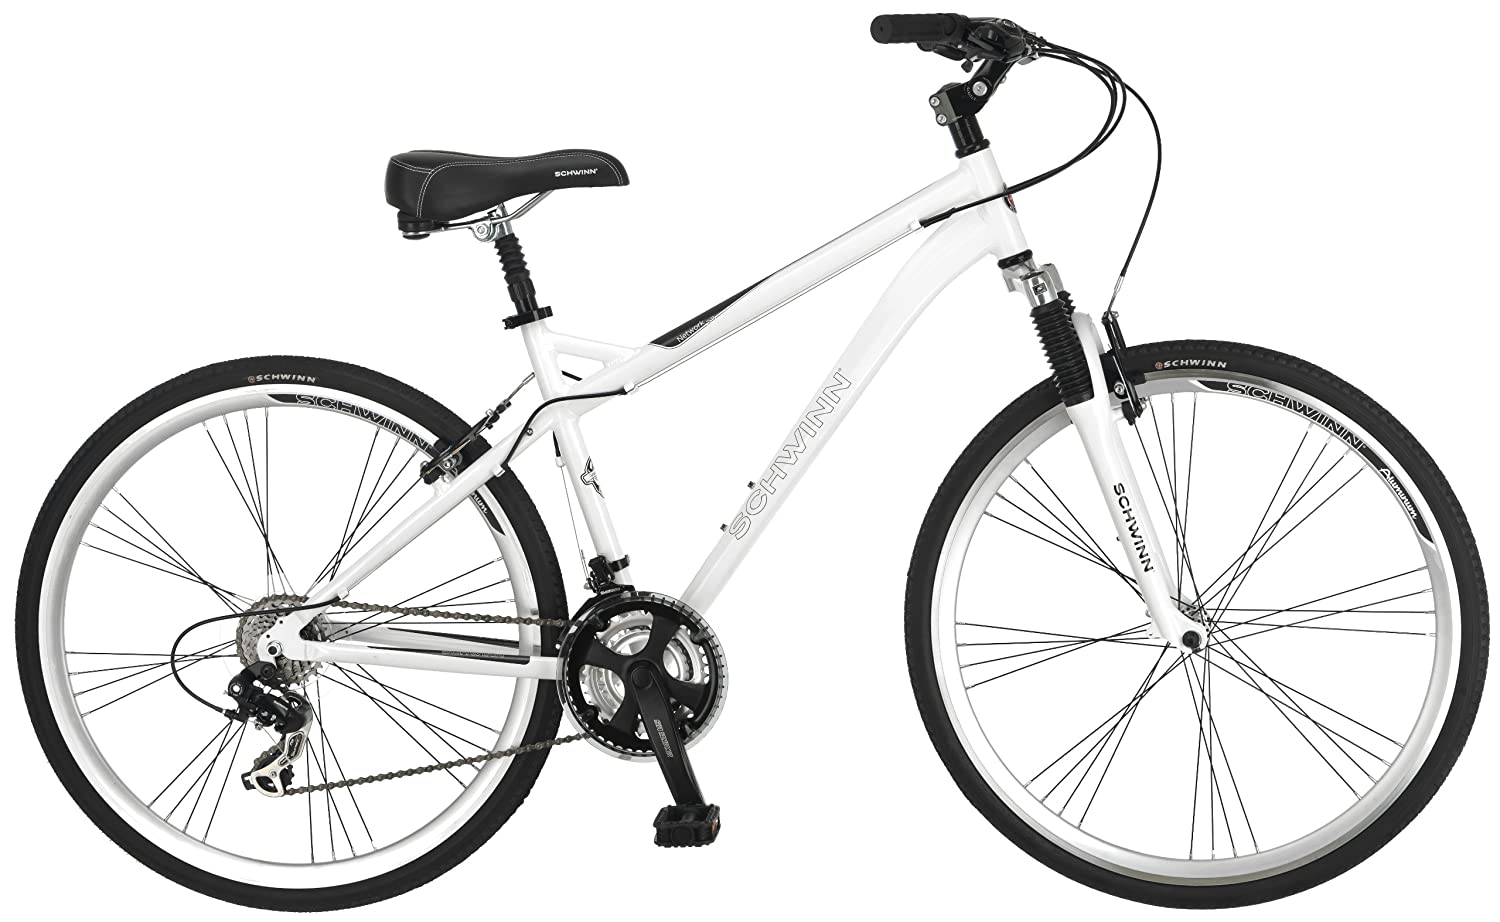 Schwinn Men's Network 3.0 700C Wheel Men's Hybrid Bicycle White, 18' Frame size